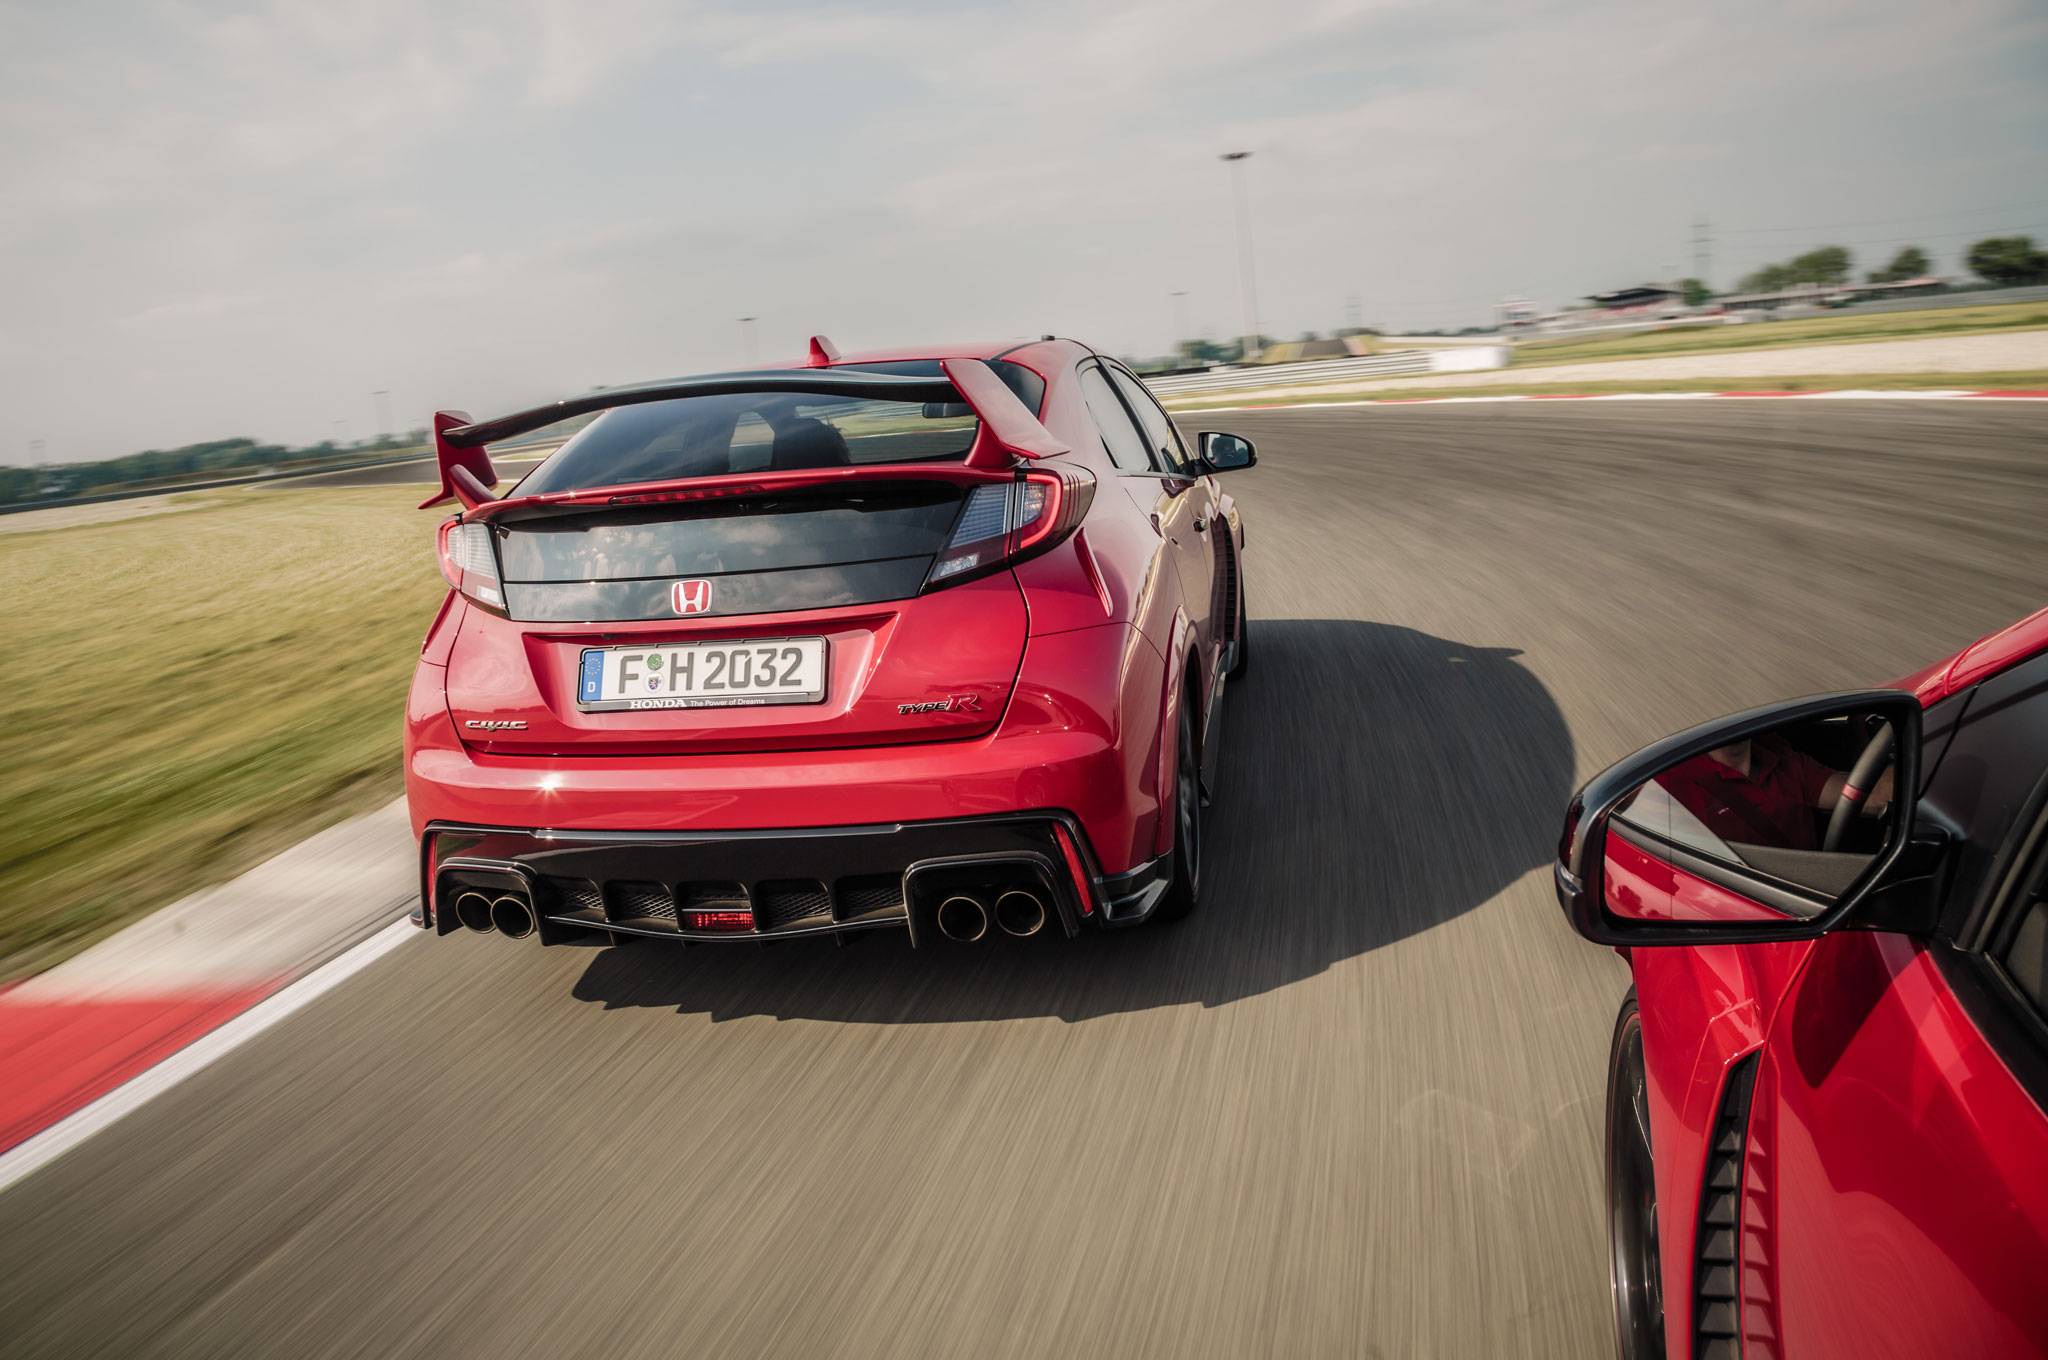 2015 Honda Civic Type R European Spec Review 1990 Accord Lx 230kvarious Times The Engine Just Cuts Off